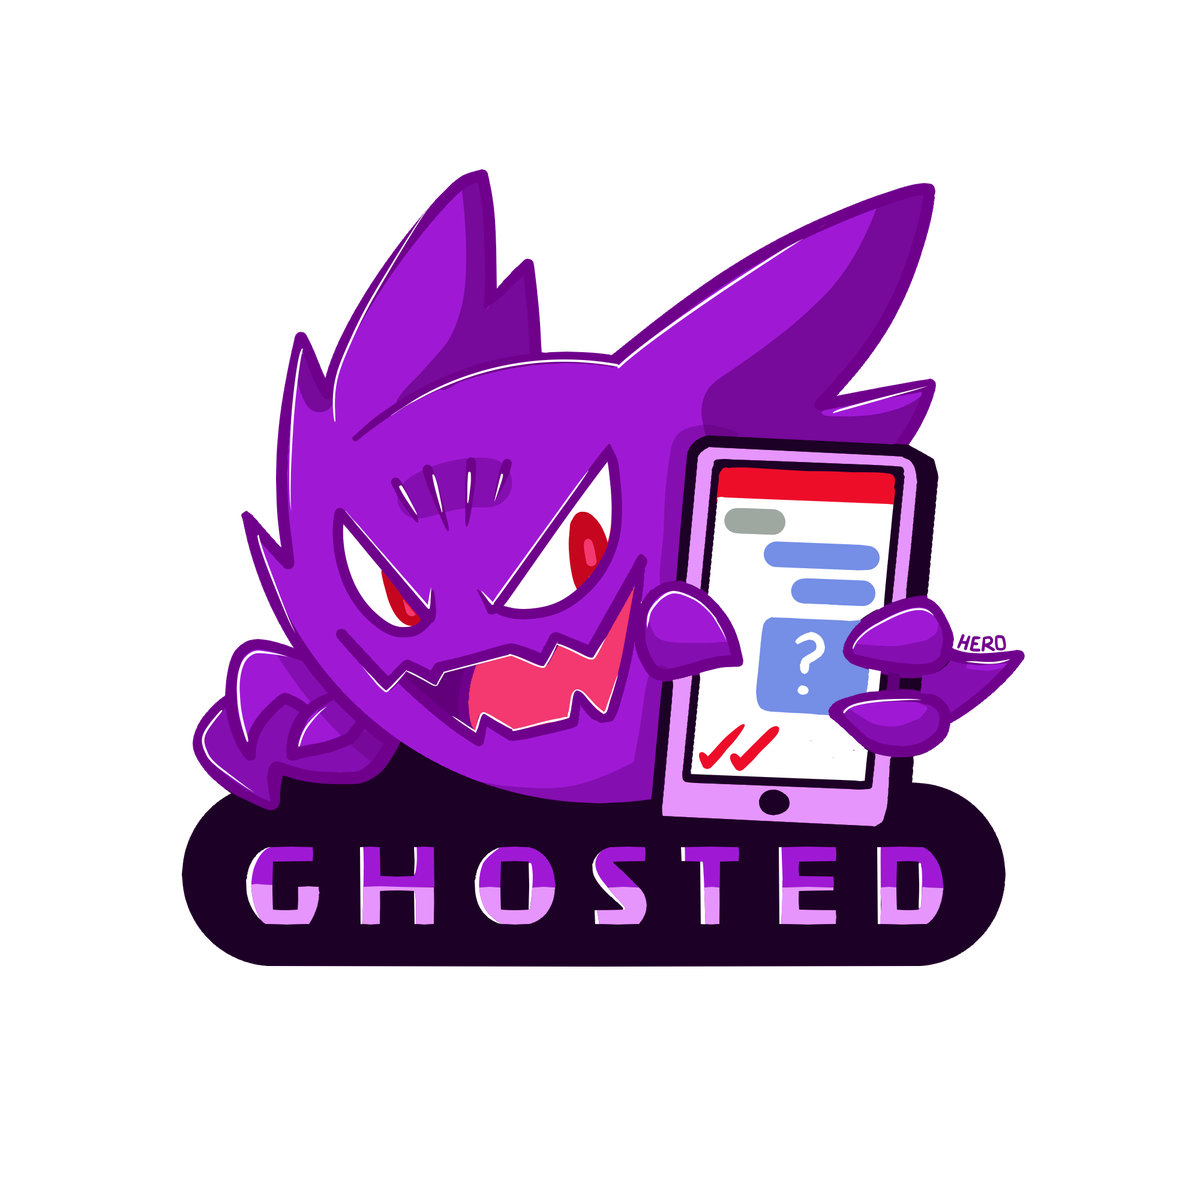 GHOSTED sticker